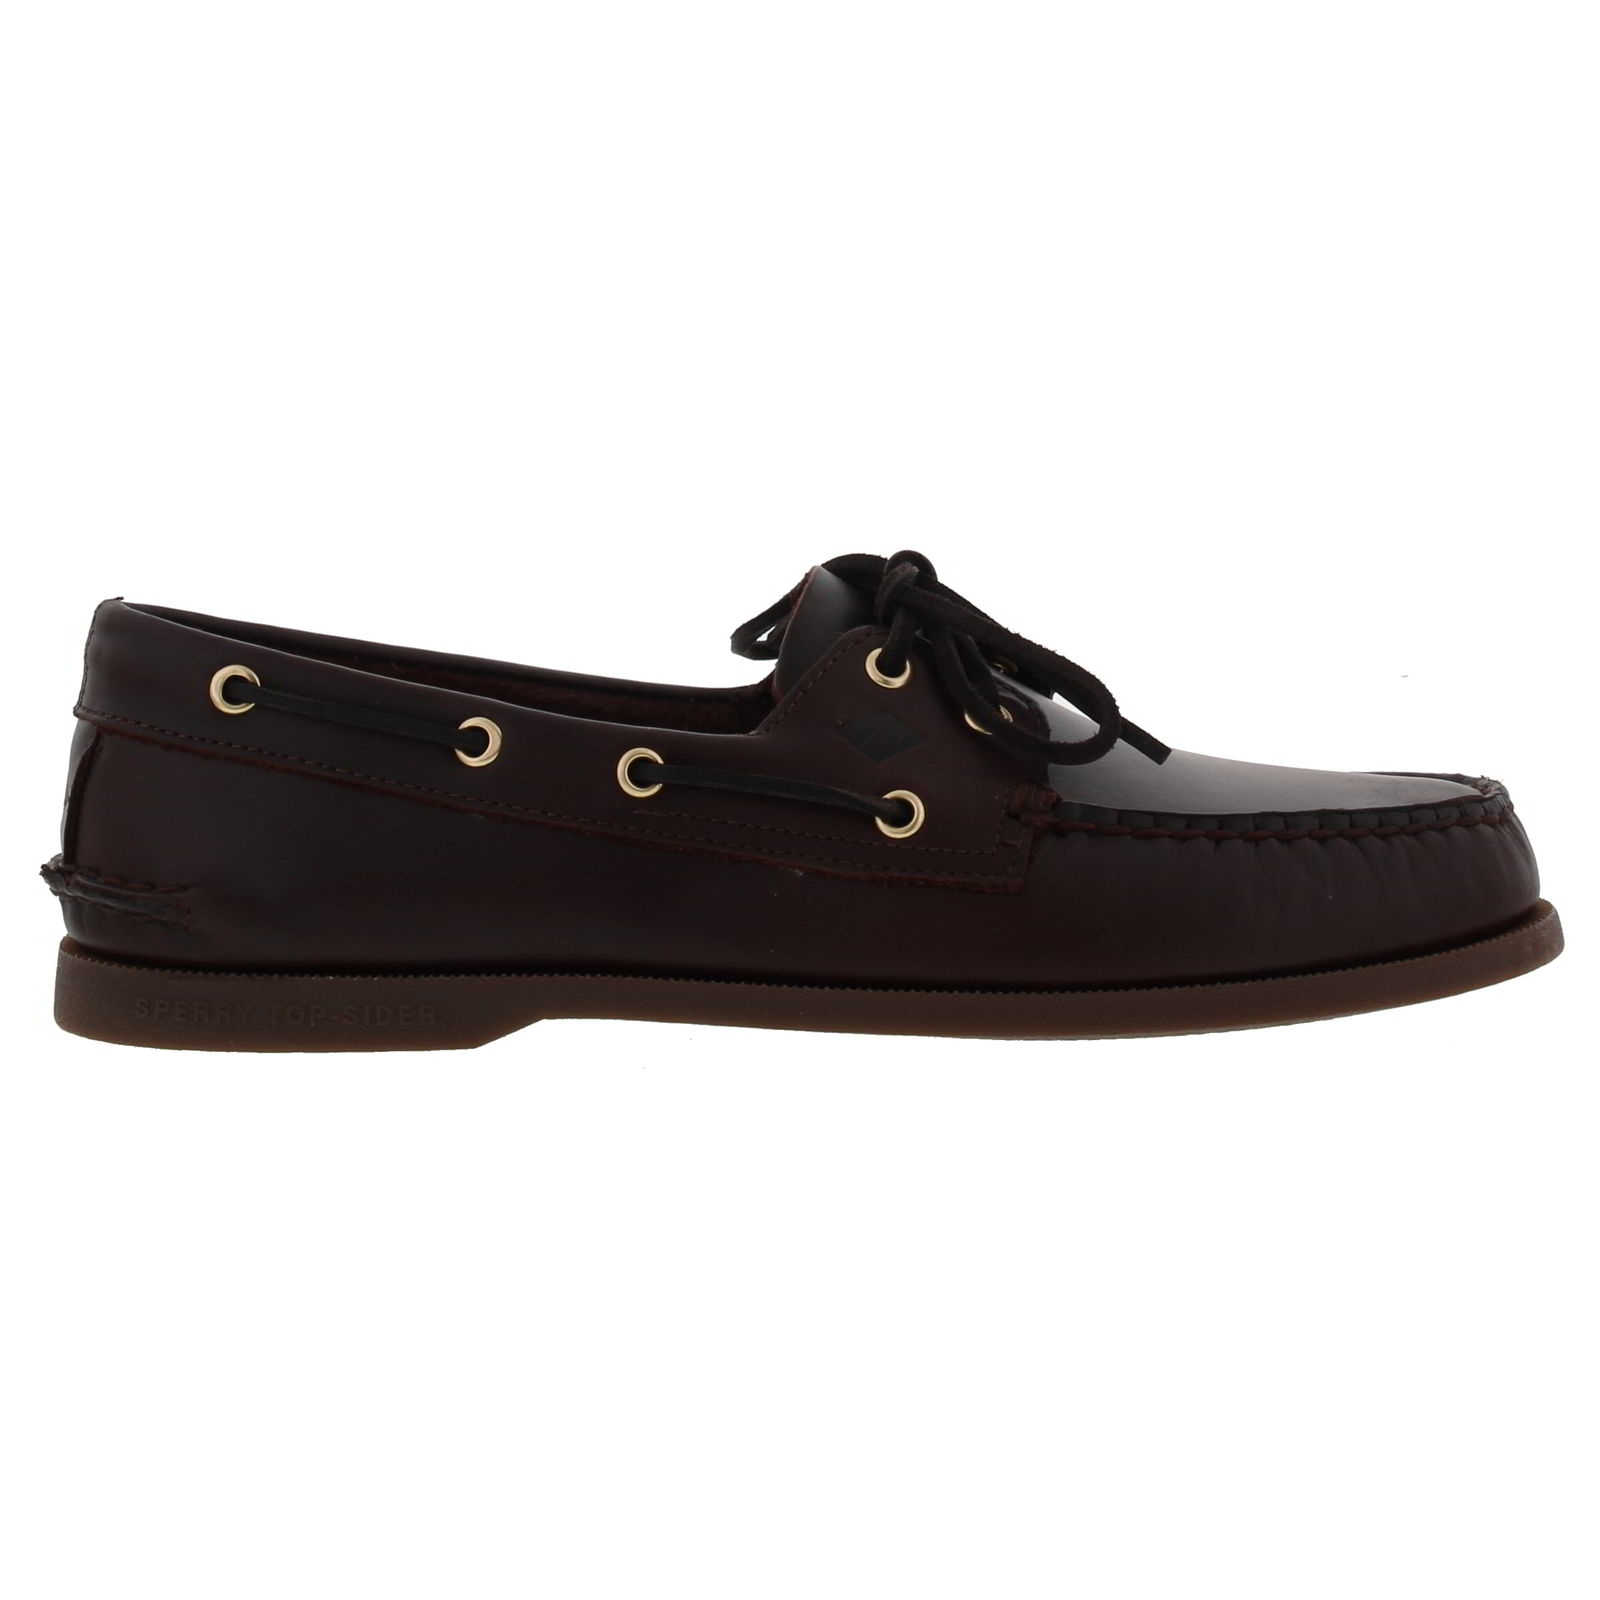 Sperry Top Sider A/O 2 Eye Brown Leather Mens Deck Boat ...